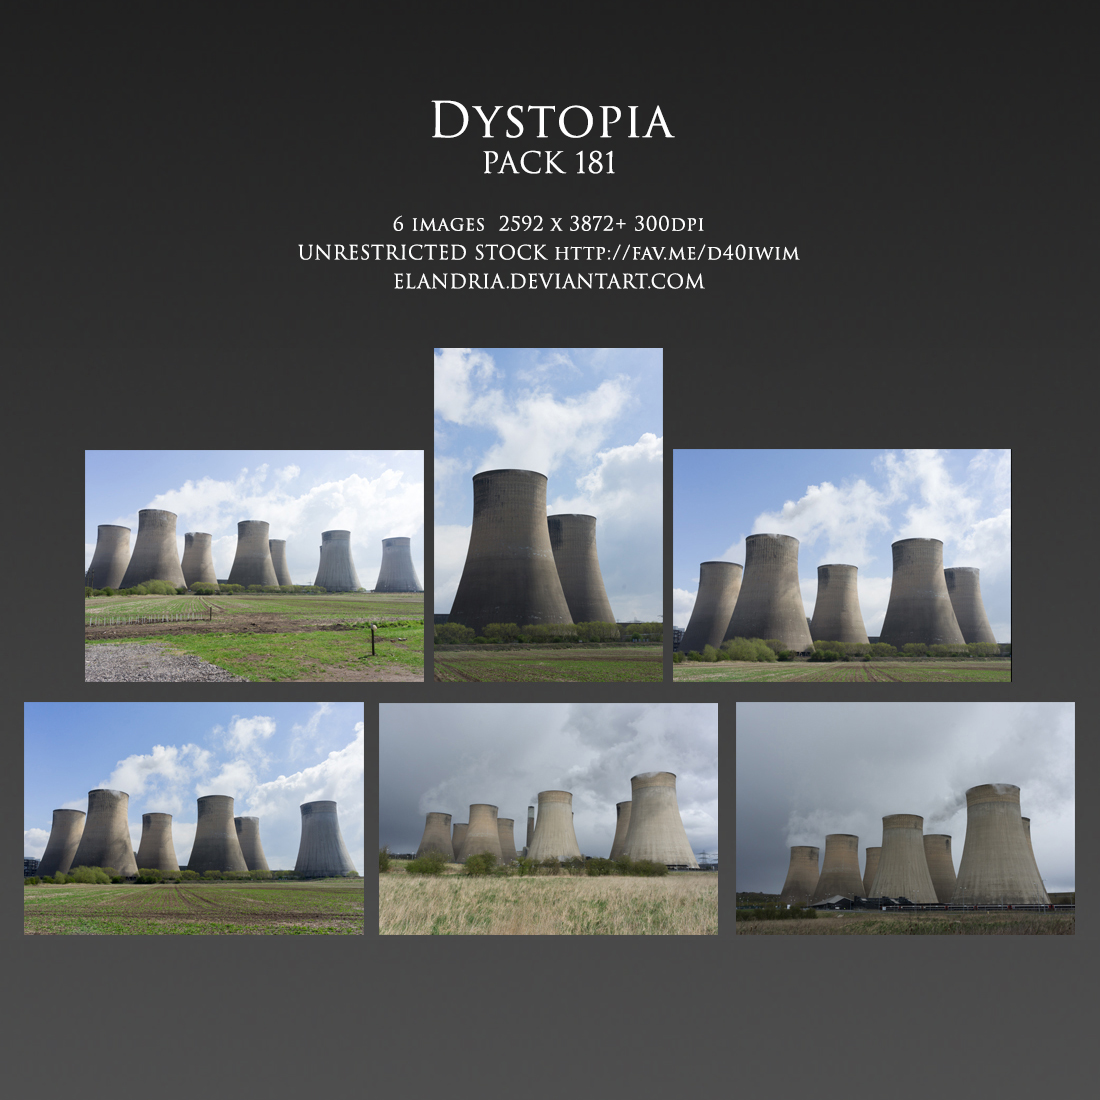 Pack181 Dystopia UNRESTRICTED